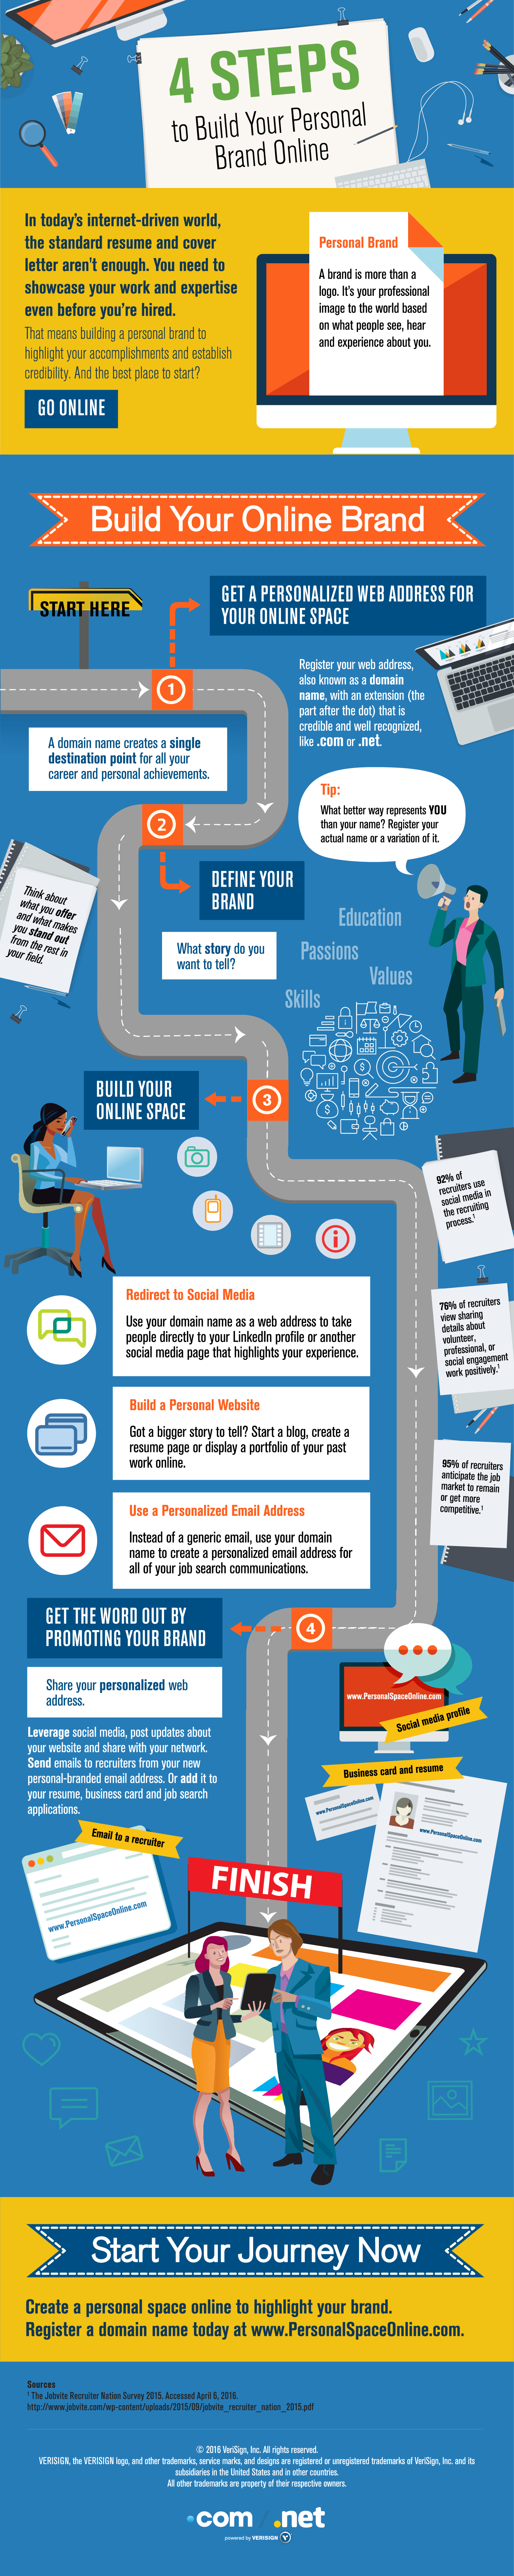 Infographic 4 Steps to Build Your Personal Brand Online